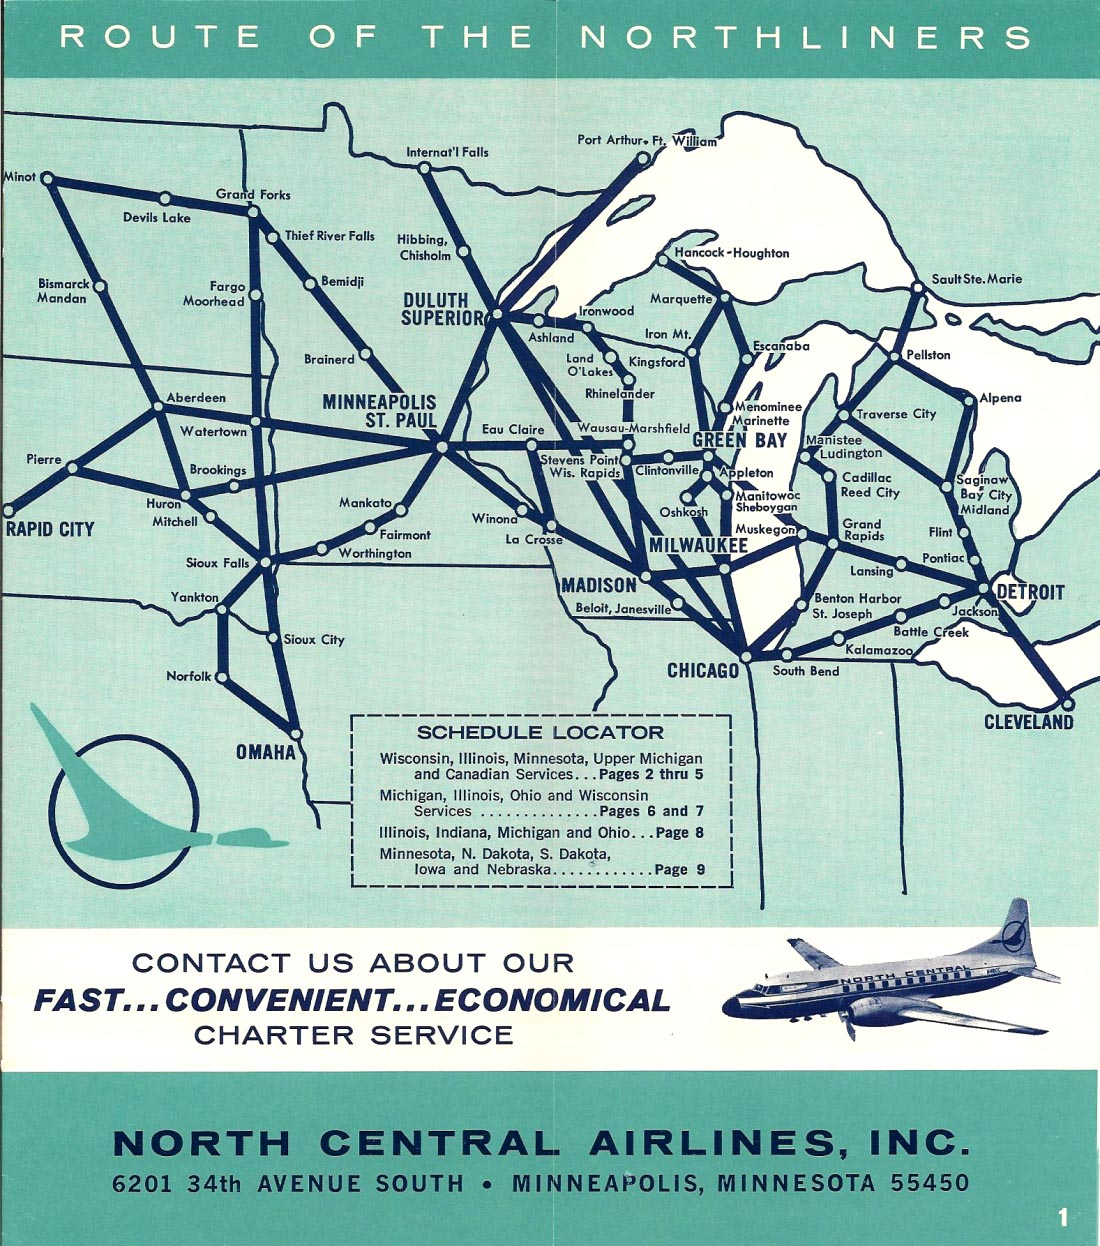 North Central Airlines - Wisconsin Central Airlines on air florida route map, southwest airtran route map, southern airways route map, british airways route map, south west route map, britannia airways route map, south west airlines seat map, braniff international route map, south west airline from seattle map, southwest airlines flight routes map,